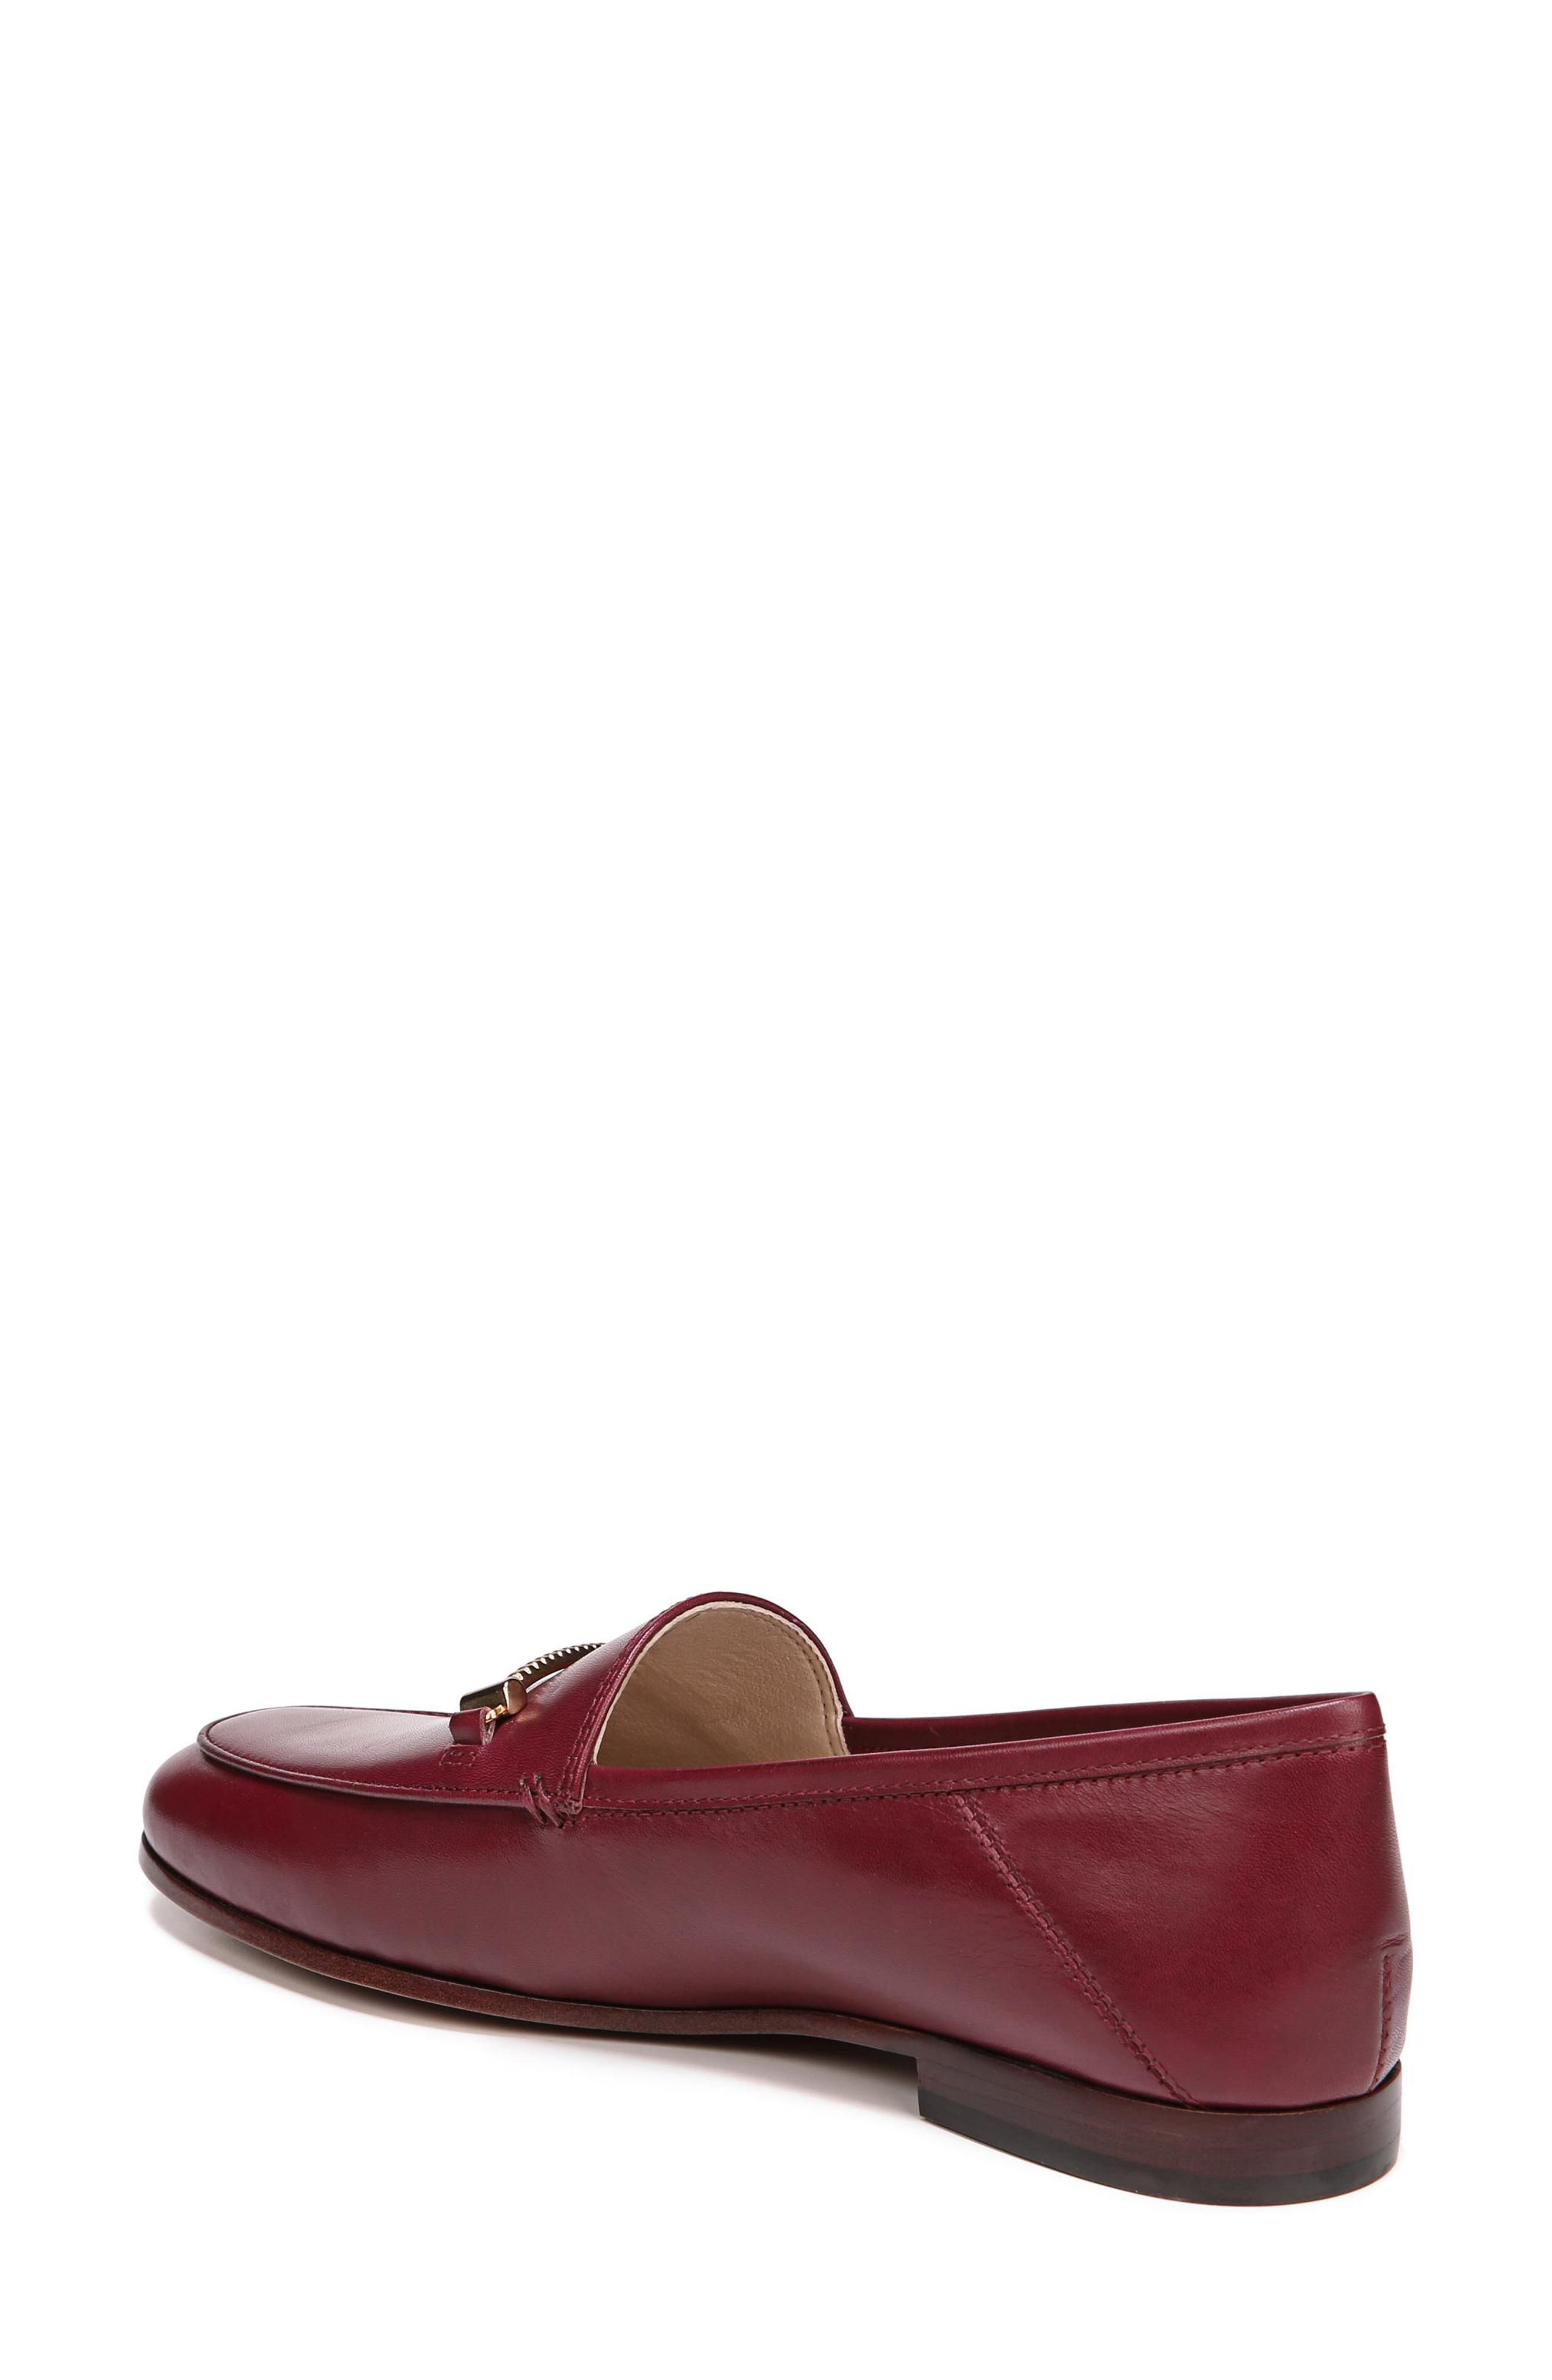 Lior Loafer,                             Alternate thumbnail 2, color,                             BEET RED LEATHER